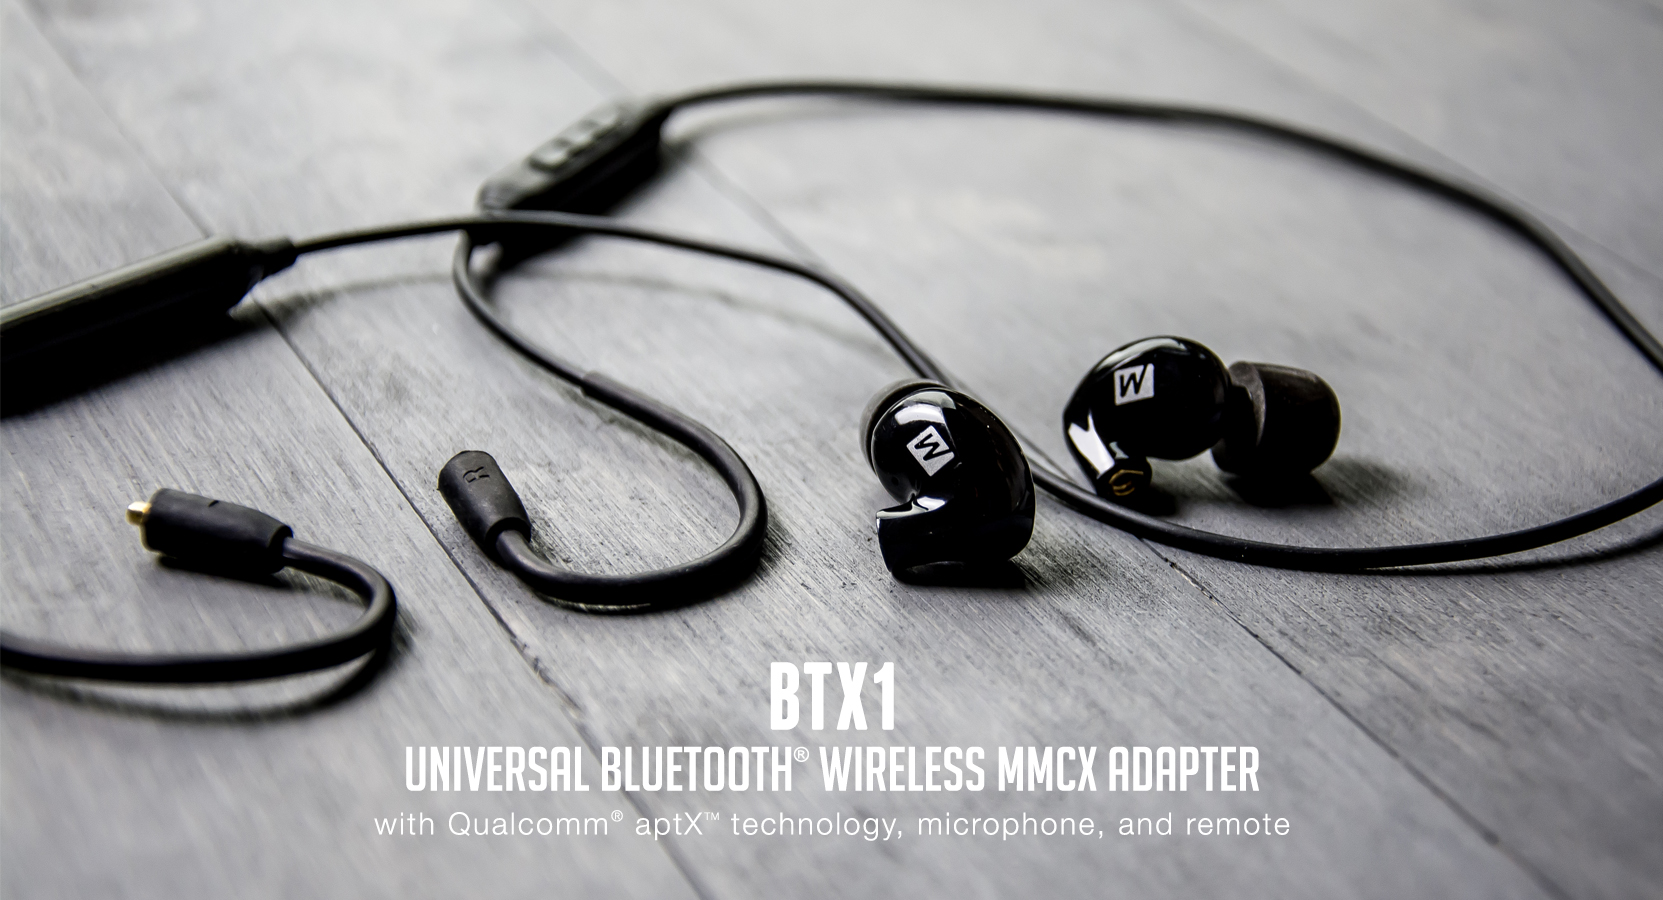 Mee Audio Btx1 Universal Bluetooth Wireless Mmcx Adapter Cable With Bt Phone Wiring Stream Without Wires